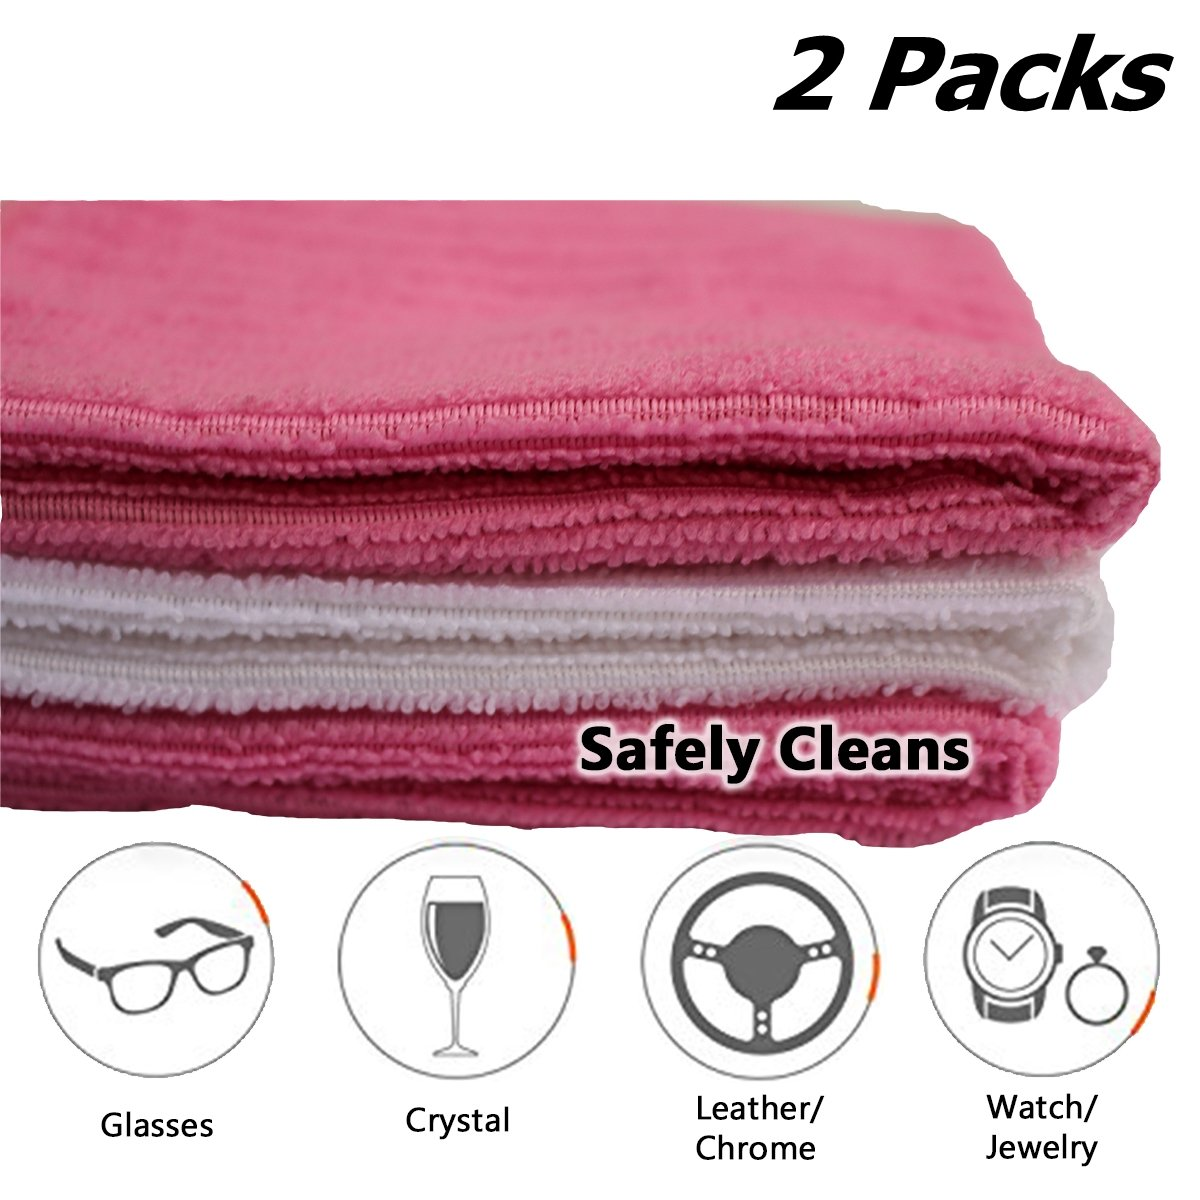 6 FACE CLOTHS Pink & White With Super Soft High Quality Micro Fibre Wash Bath Baby Towel Mask Spa Hand Pack Sheets Family Kids Gift Gym Travel Super Clean Absorbent Schöne Cosmetics (UK)